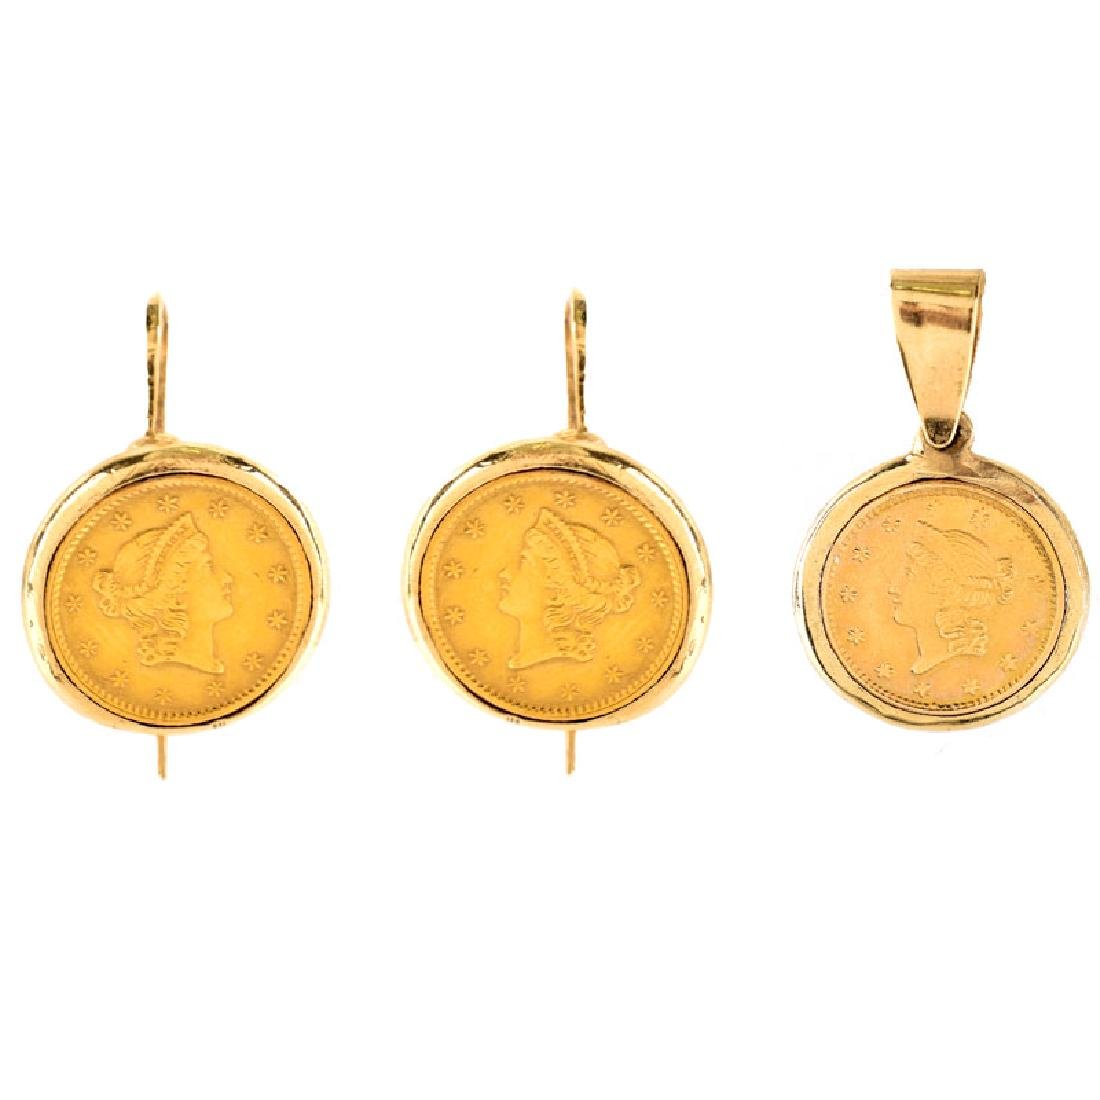 Three (3) Piece US $1 Gold Coin and 14 Karat Yellow